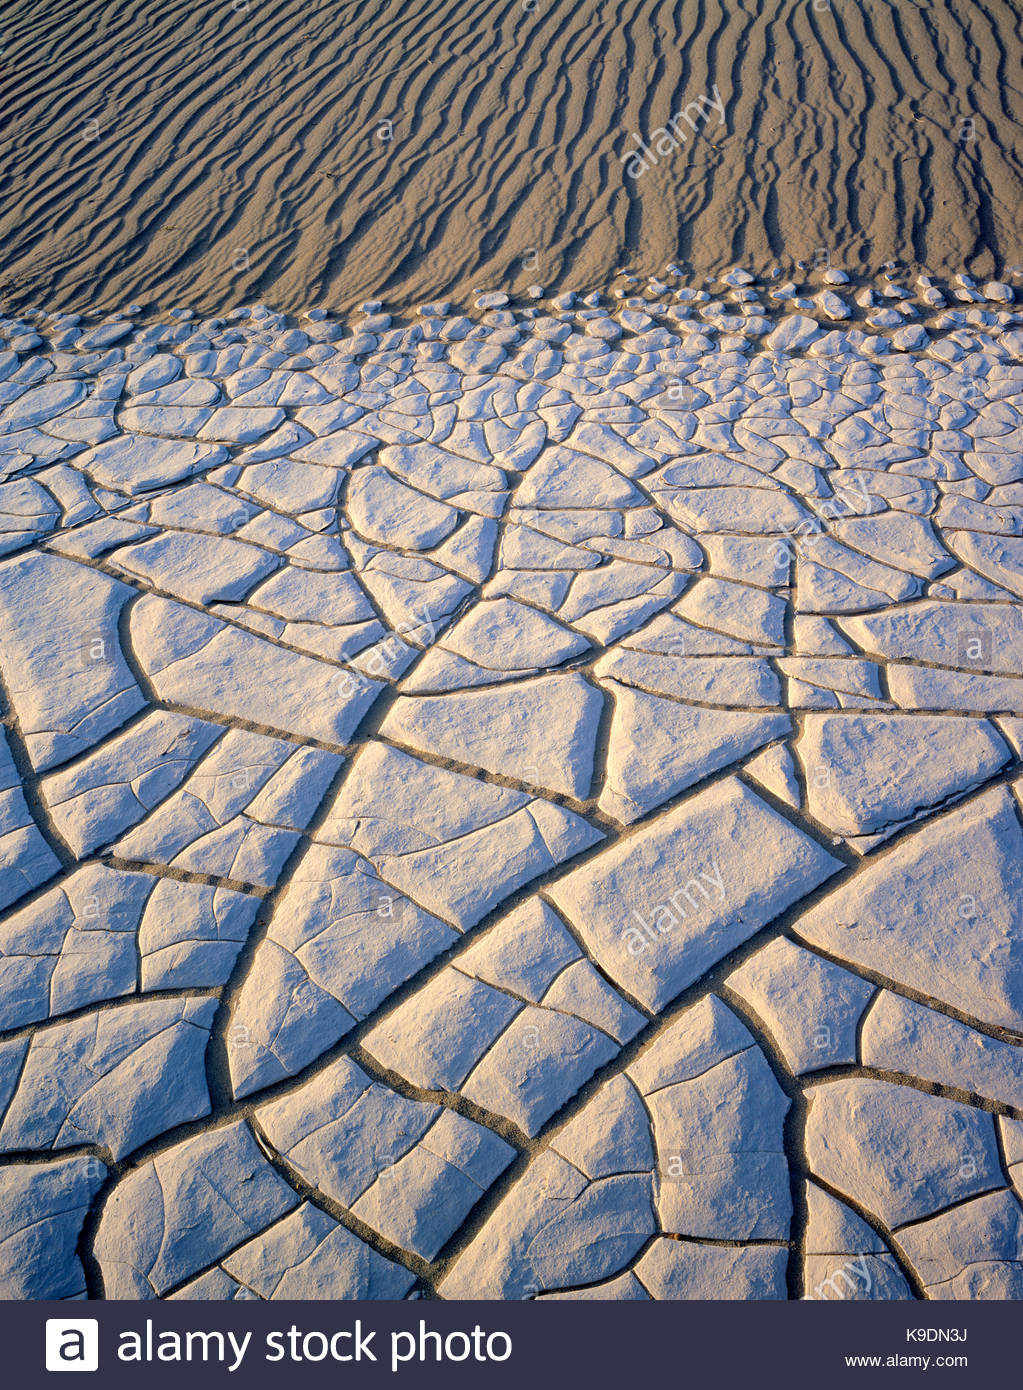 Playa Muster innerhalb von Sanddünen, Death Valley National Park, Kalifornien Stockbild